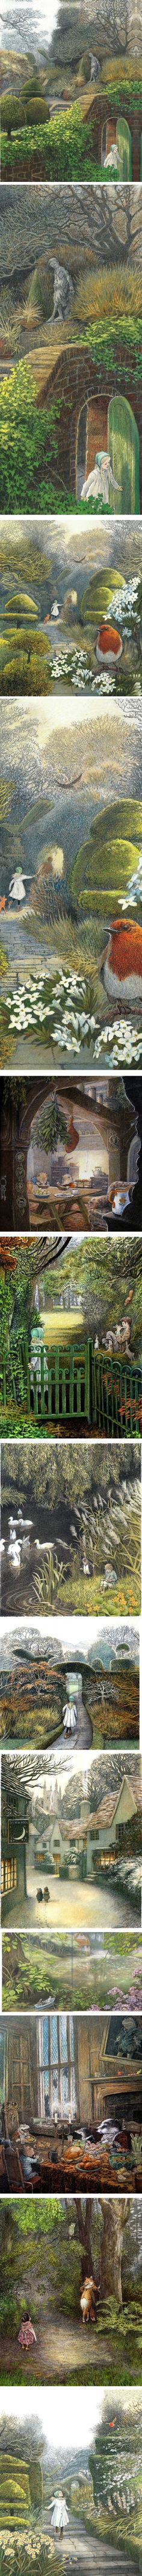 Inga Moore, illustrator Wind in the Willows, The Secret Garden